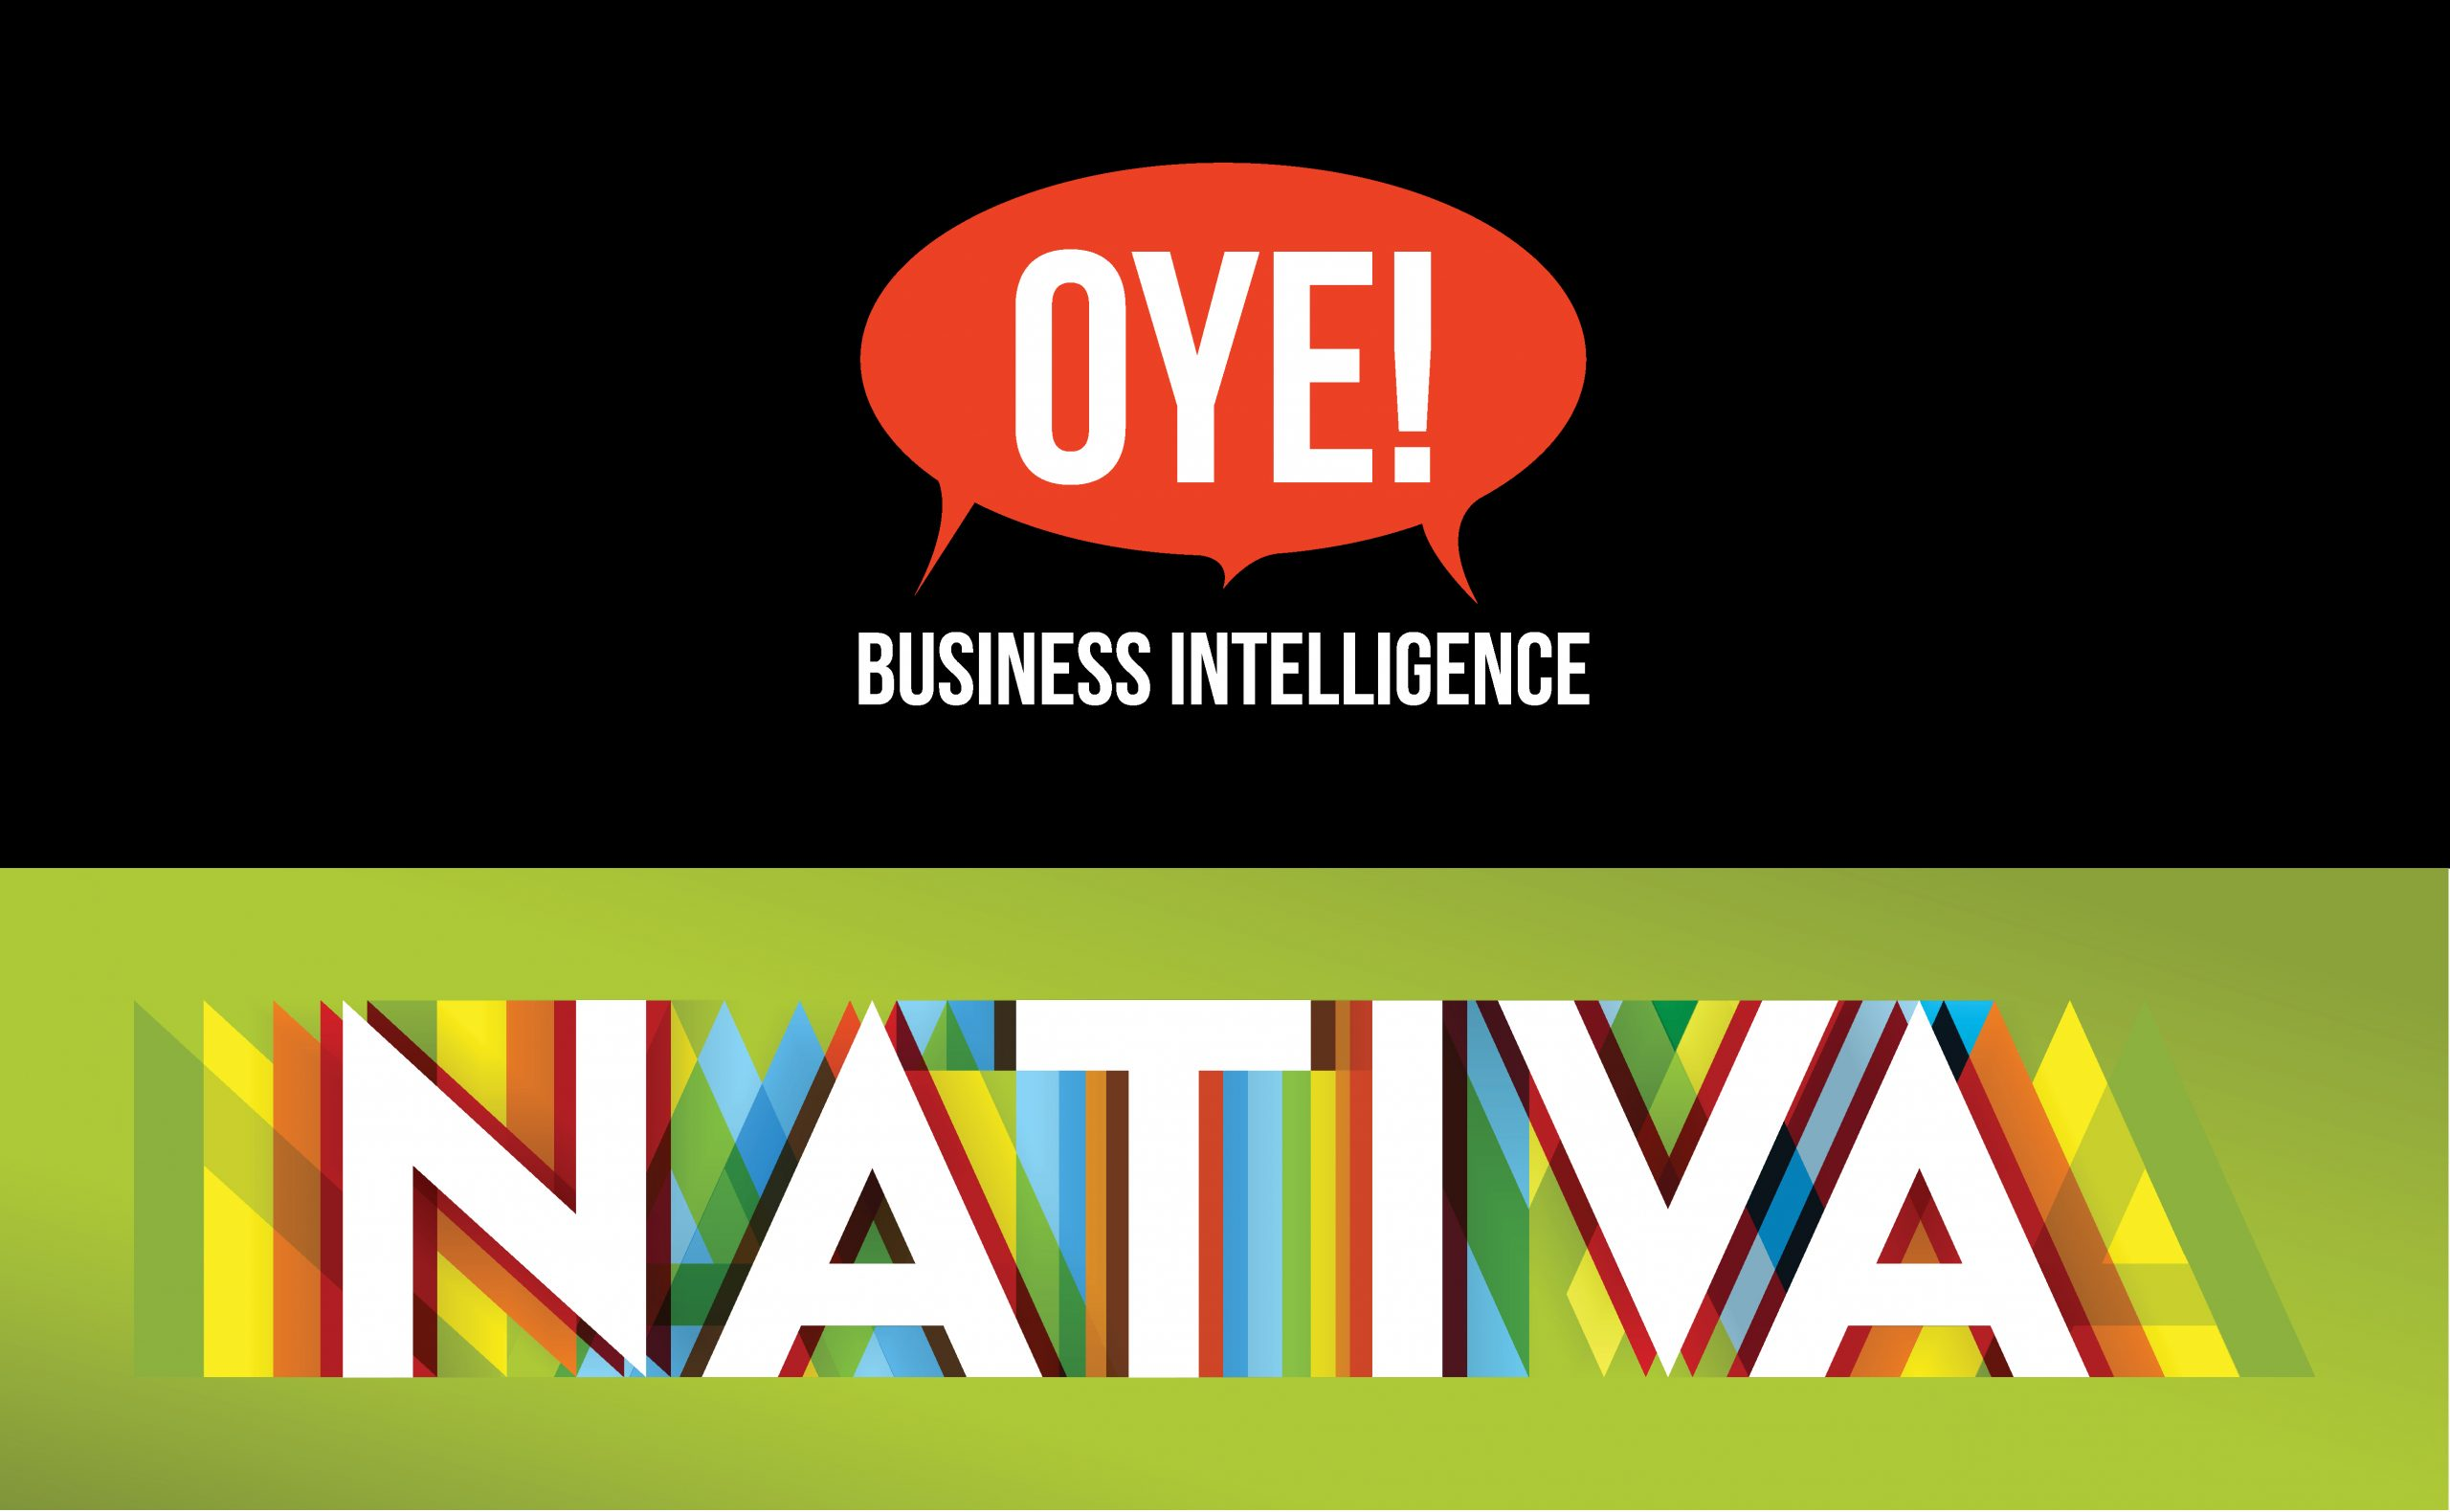 The original logos for both Nativa & O.Y.E. It was at this point that our journey as a cross-cultural marketing agency truly began.